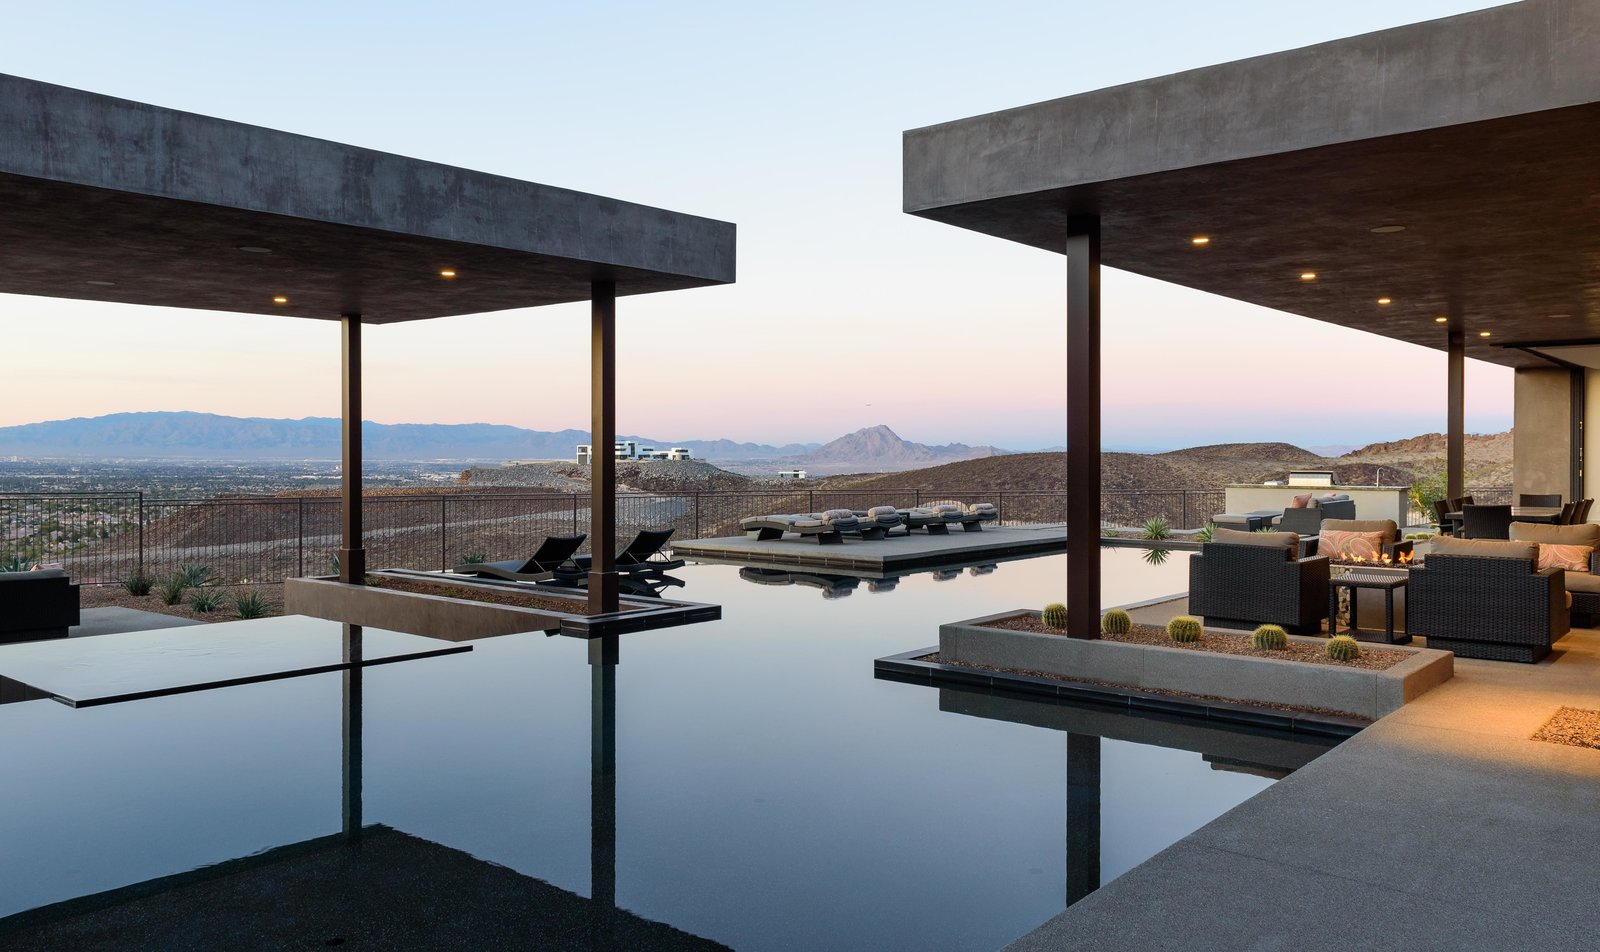 Outdoor, Salt Water Pools, Tubs, Shower, Hardscapes, Large Pools, Tubs, Shower, Infinity Pools, Tubs, Shower, Concrete Patio, Porch, Deck, Back Yard, Swimming Pools, Tubs, Shower, Landscape Lighting, Large Patio, Porch, Deck, Concrete Pools, Tubs, Shower, Vertical Fences, Wall, and Stone Patio, Porch, Deck twilight pool view  Cloud Chaser